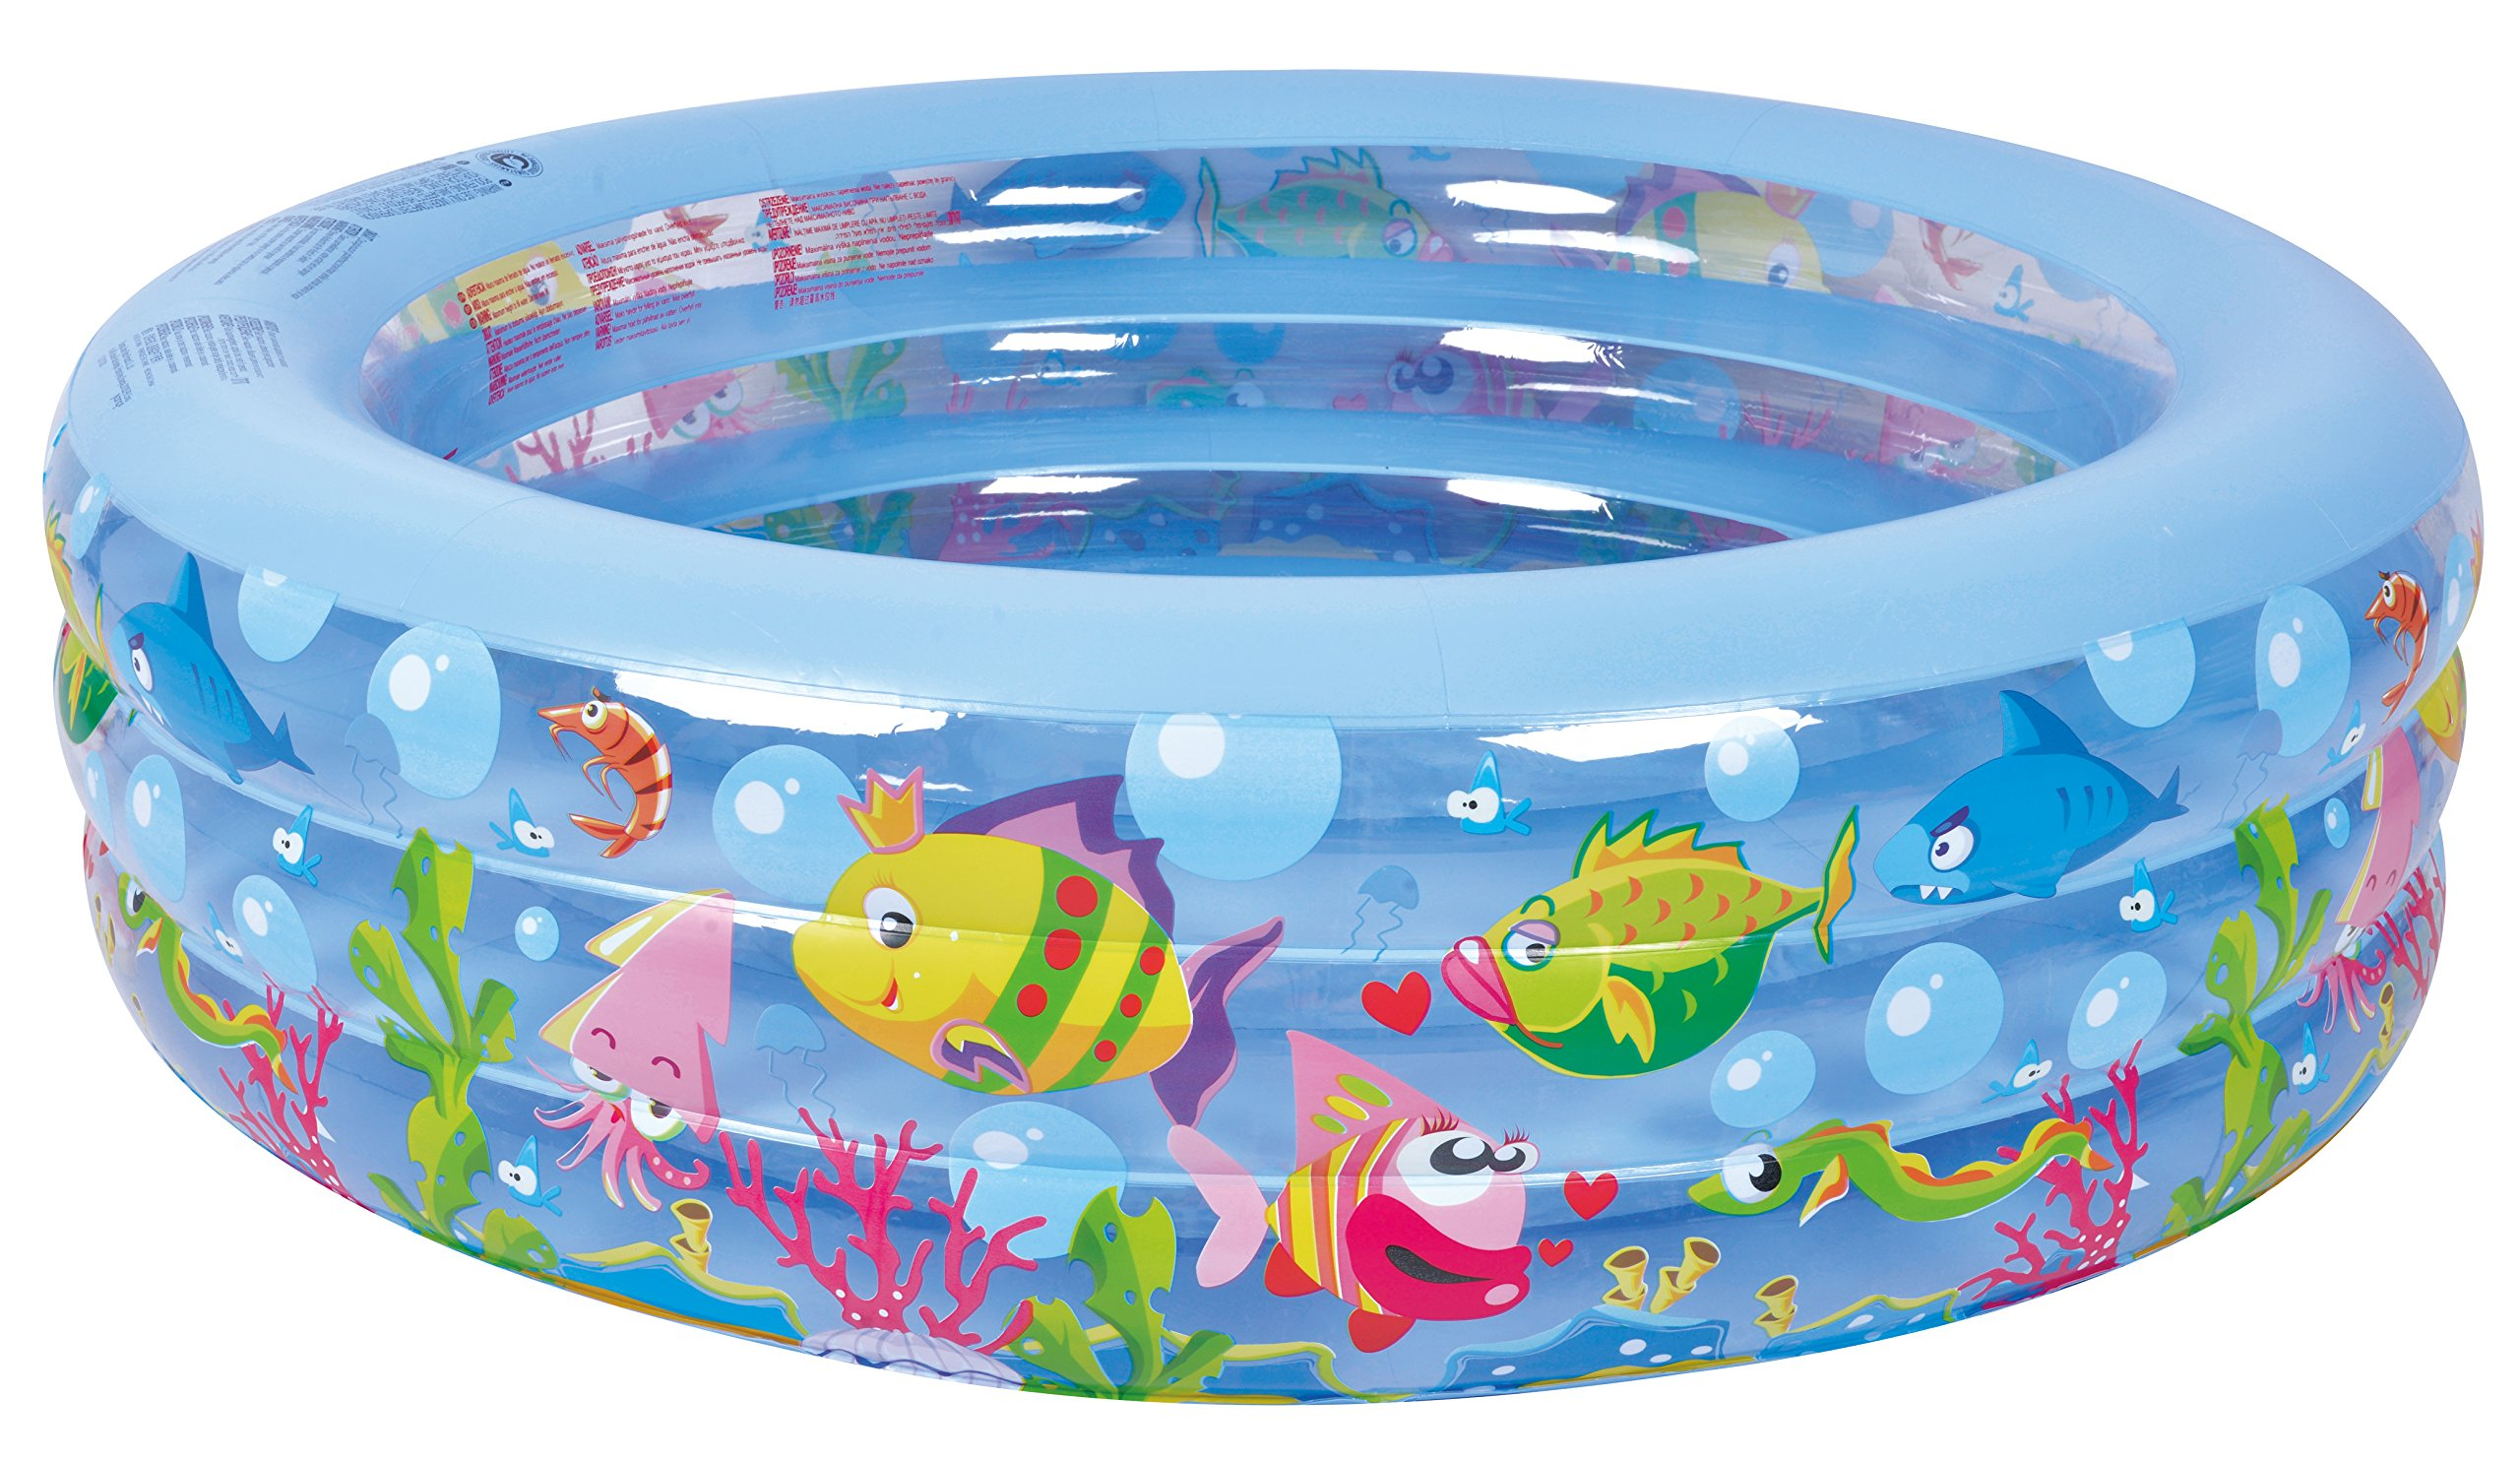 Jilong Summertime Kiddie Pool - Large Inflatable Pool for Kids with Aquarium Design - 185'' x 73'' x 20''